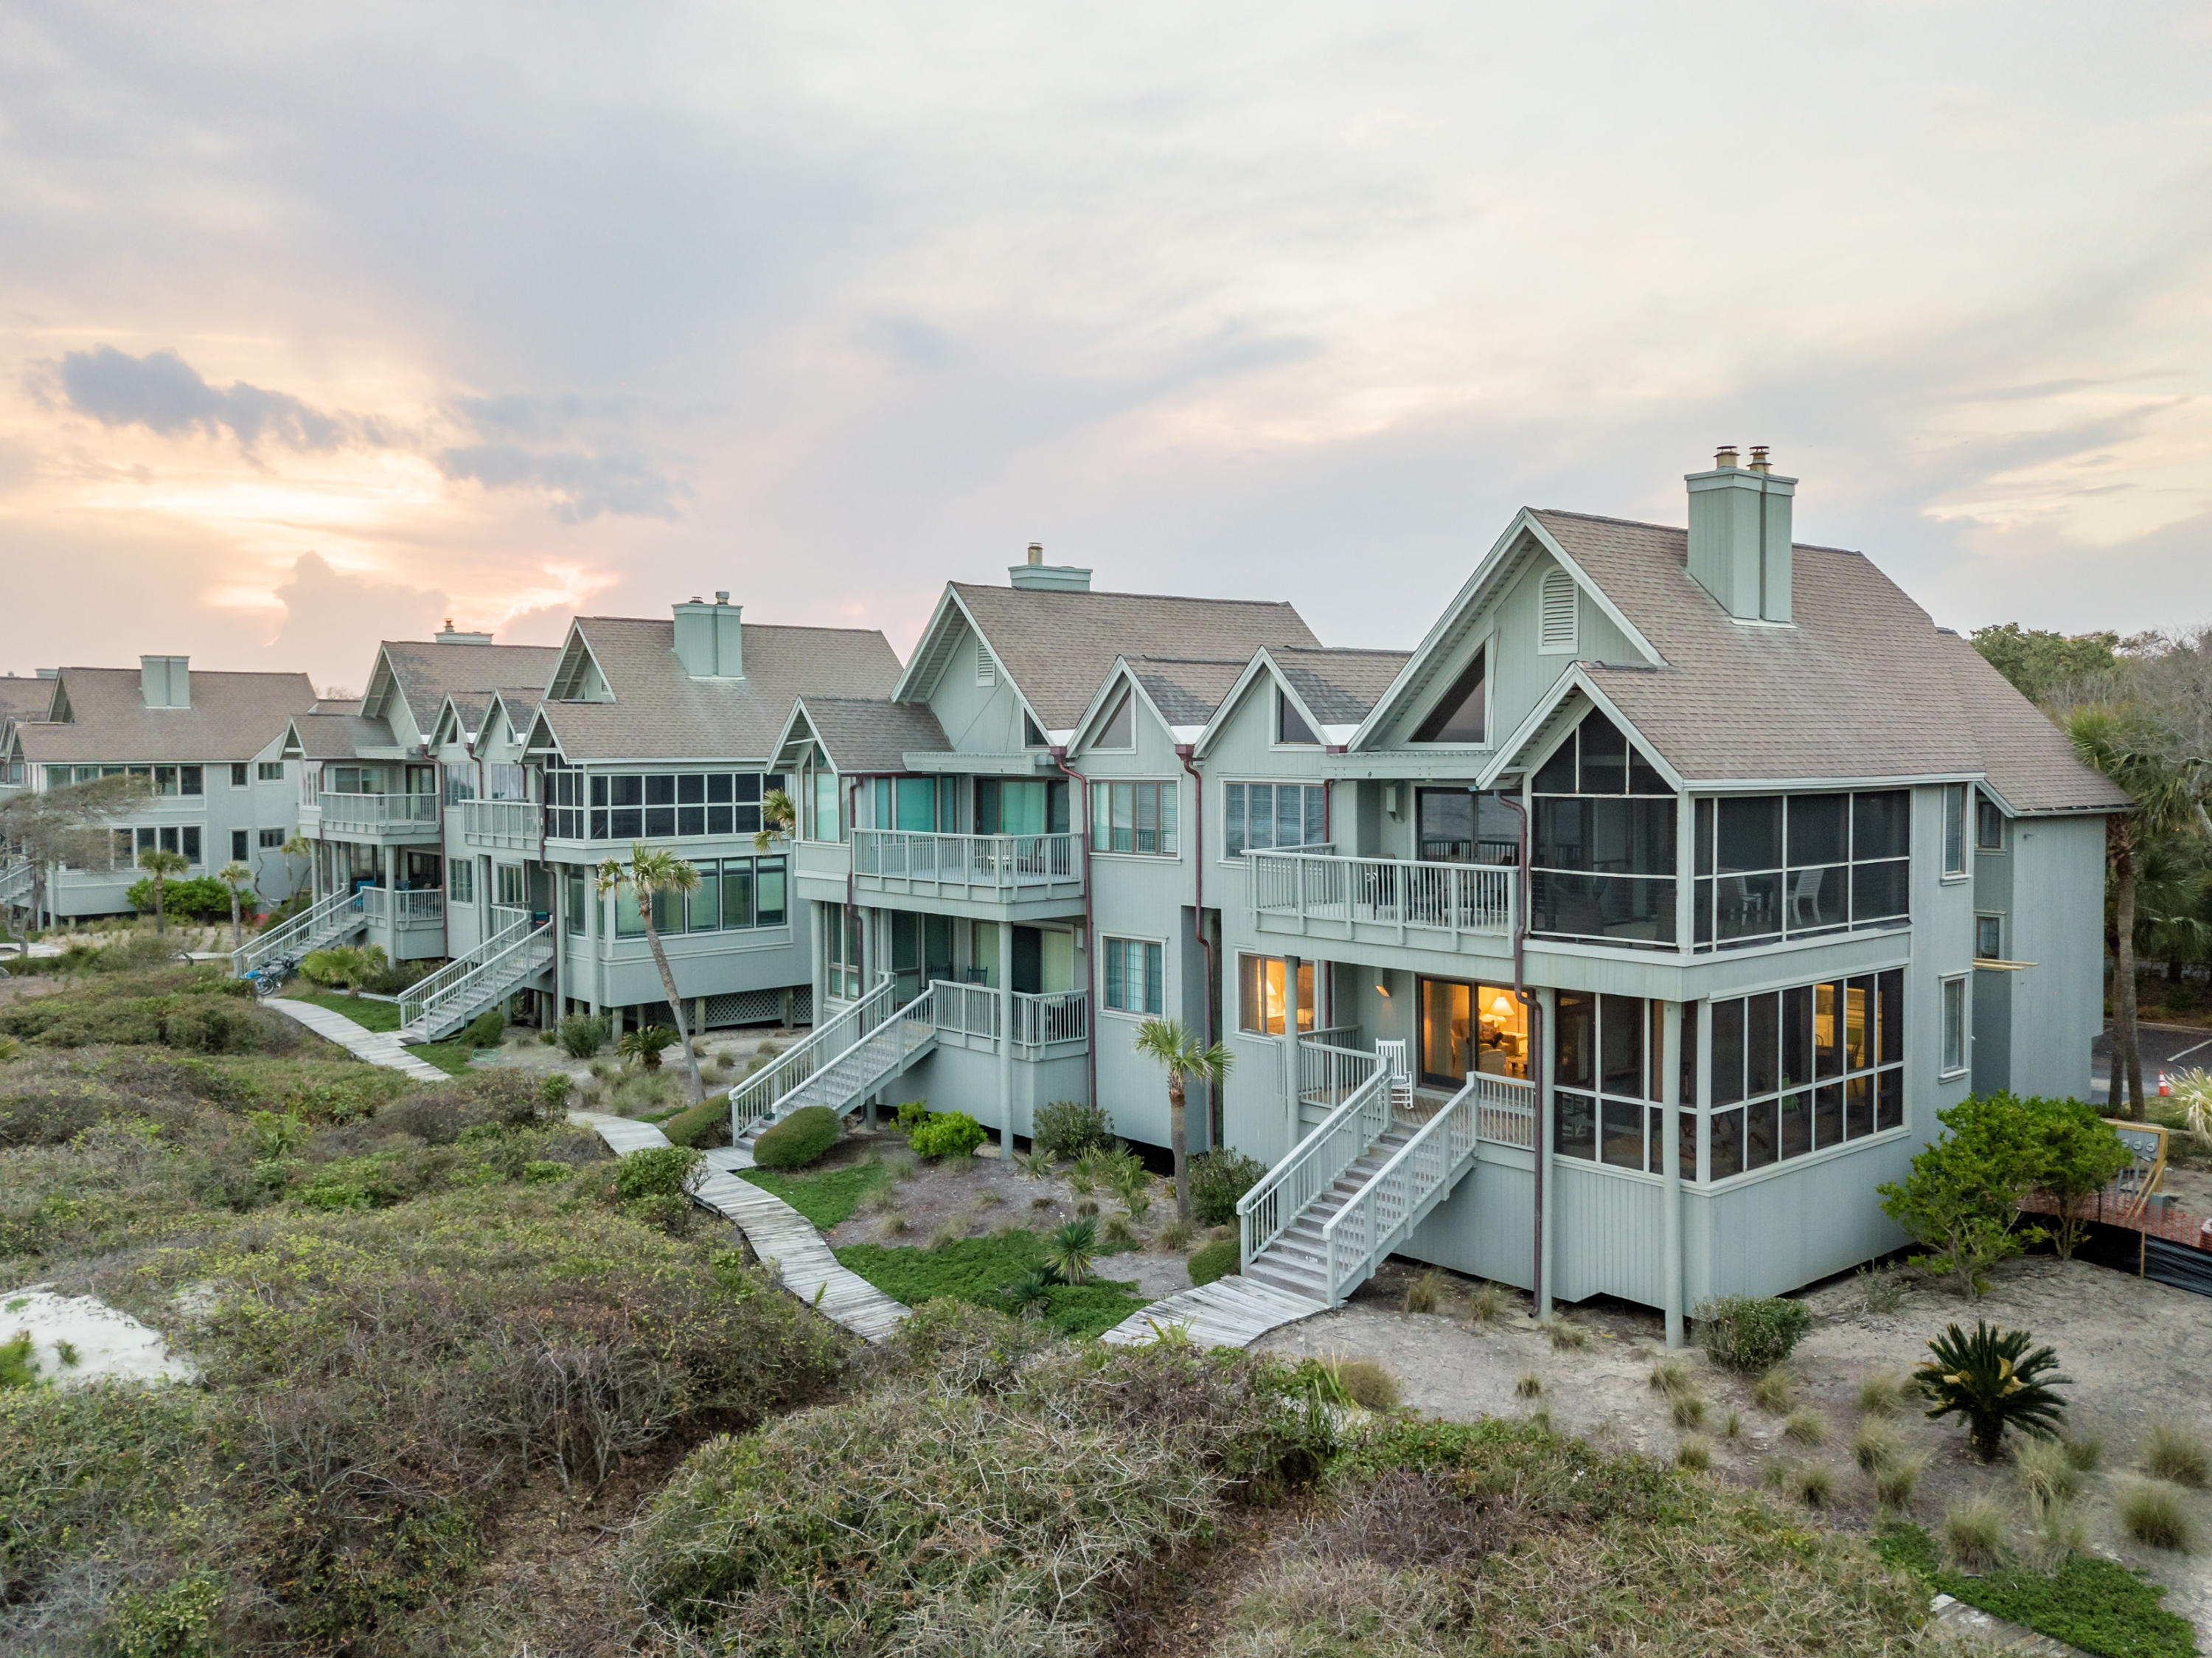 4204 Mariners Watch Kiawah Island, SC 29455